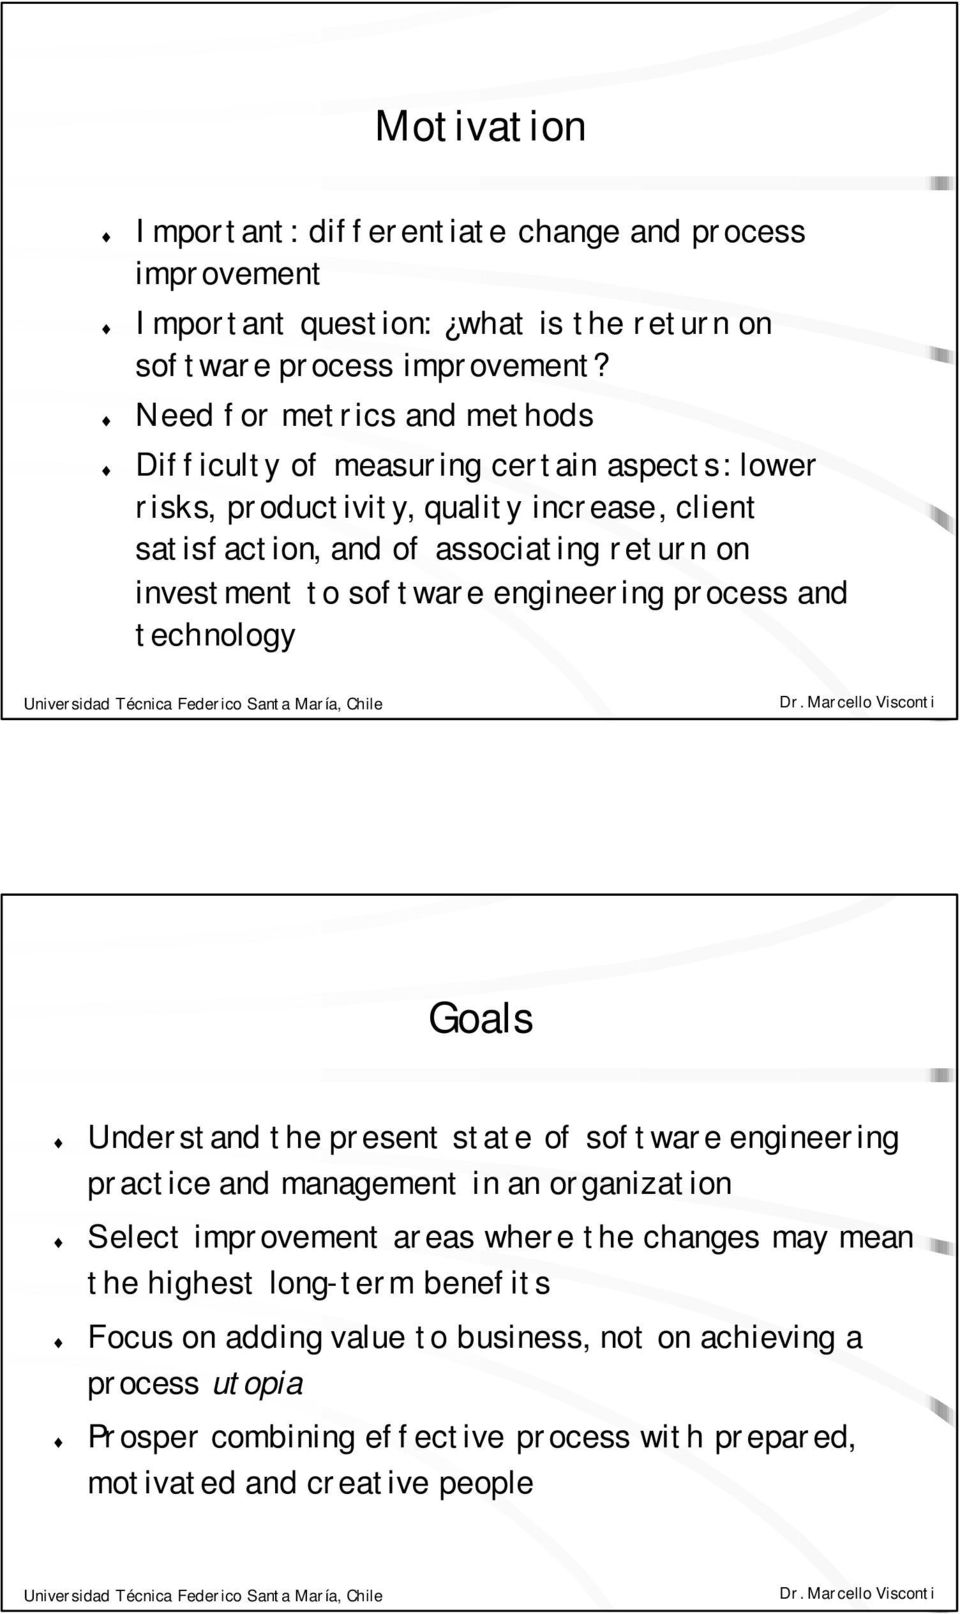 investment to software engineering process and technology Goals Understand the present state of software engineering practice and management in an organization Select